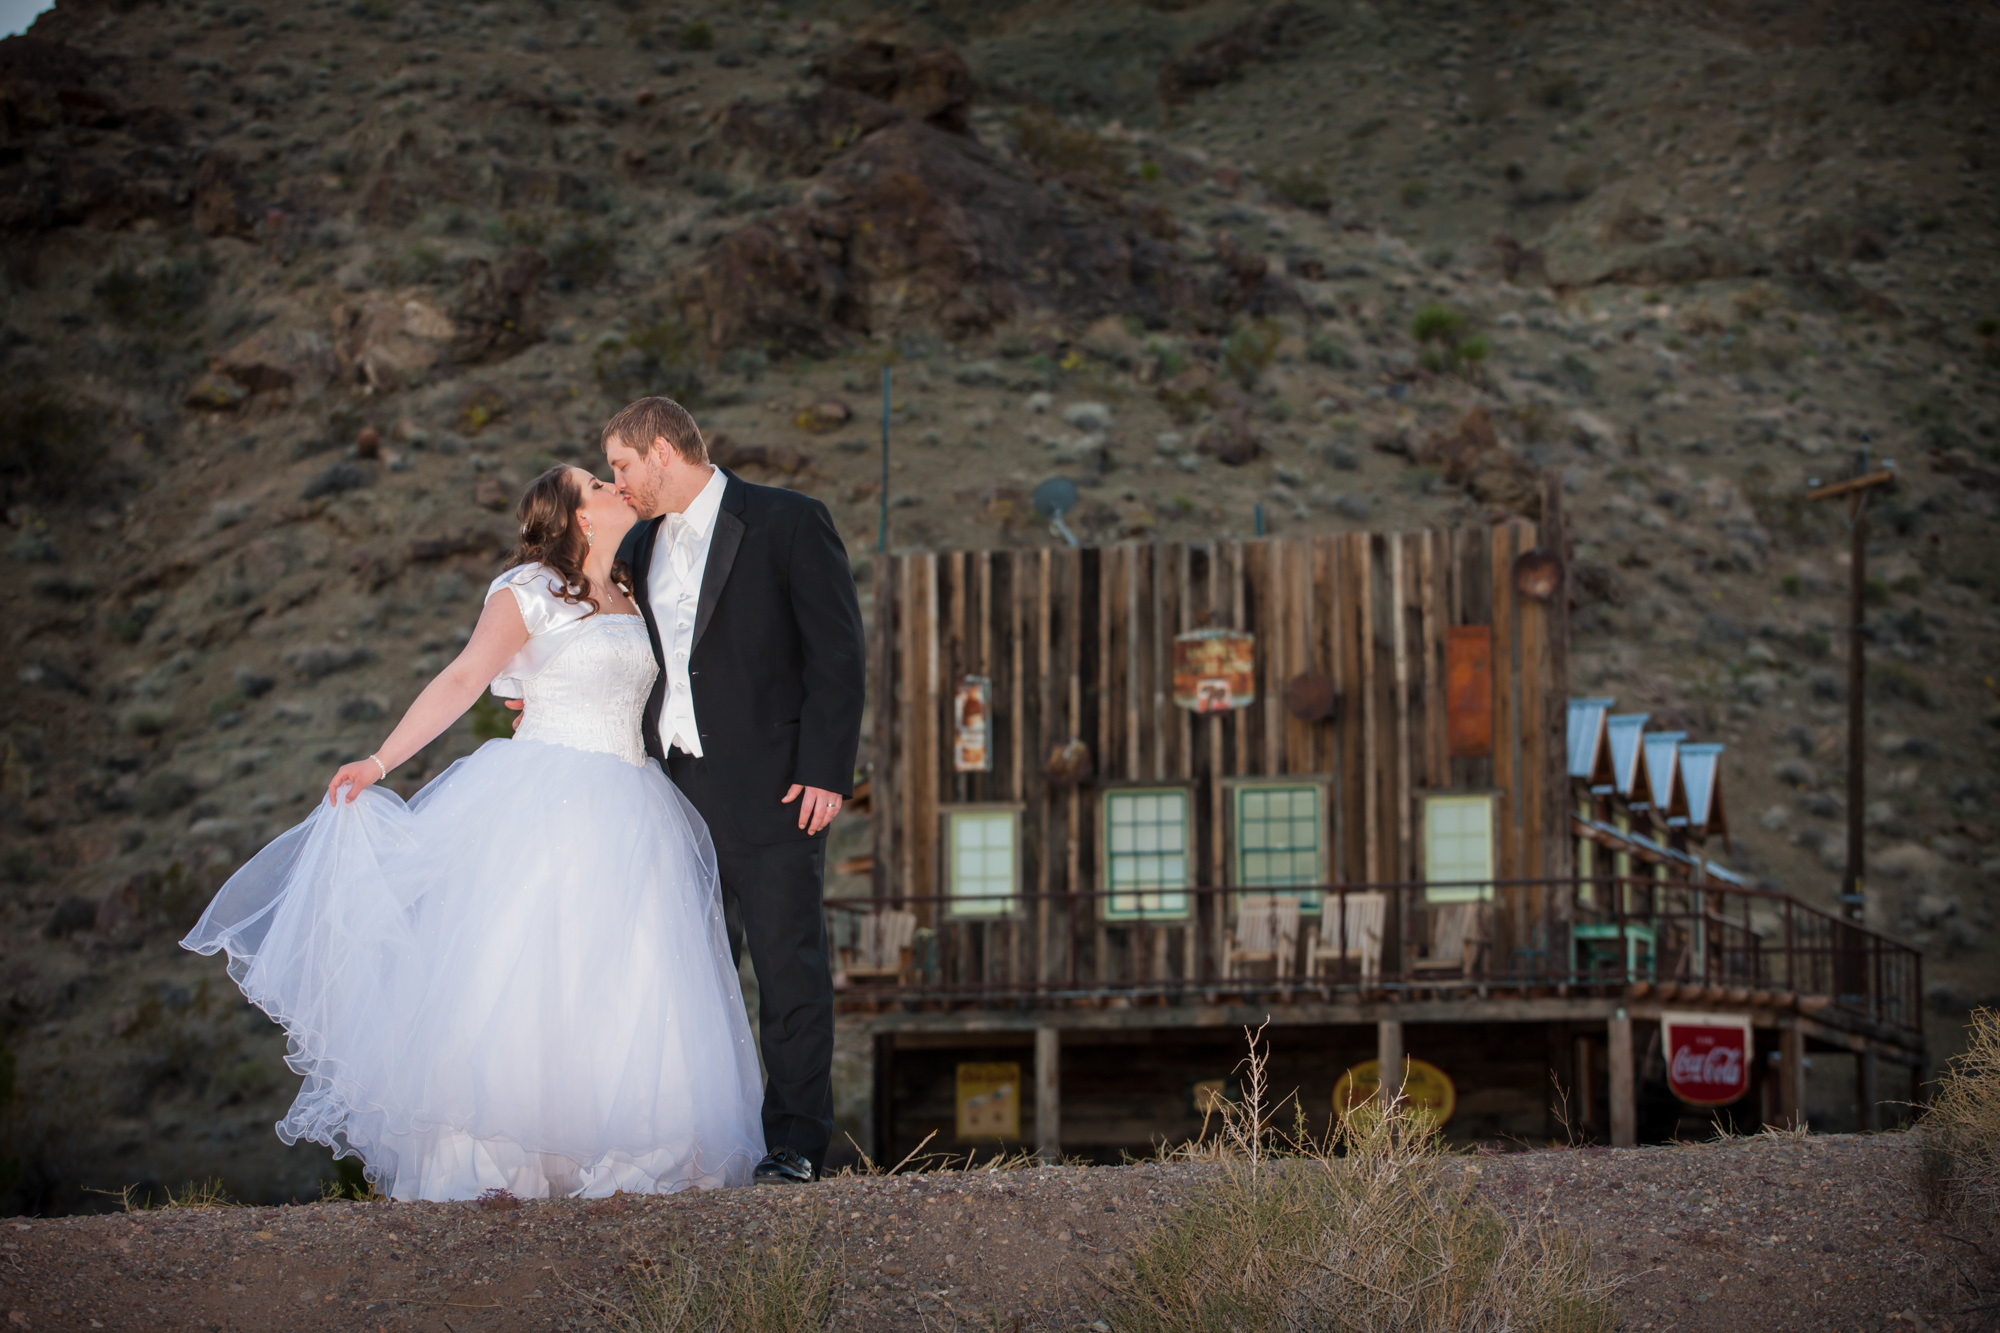 Las Vegas Wedding Chapel Chapel of the Flowers Announces New Historic Nelso